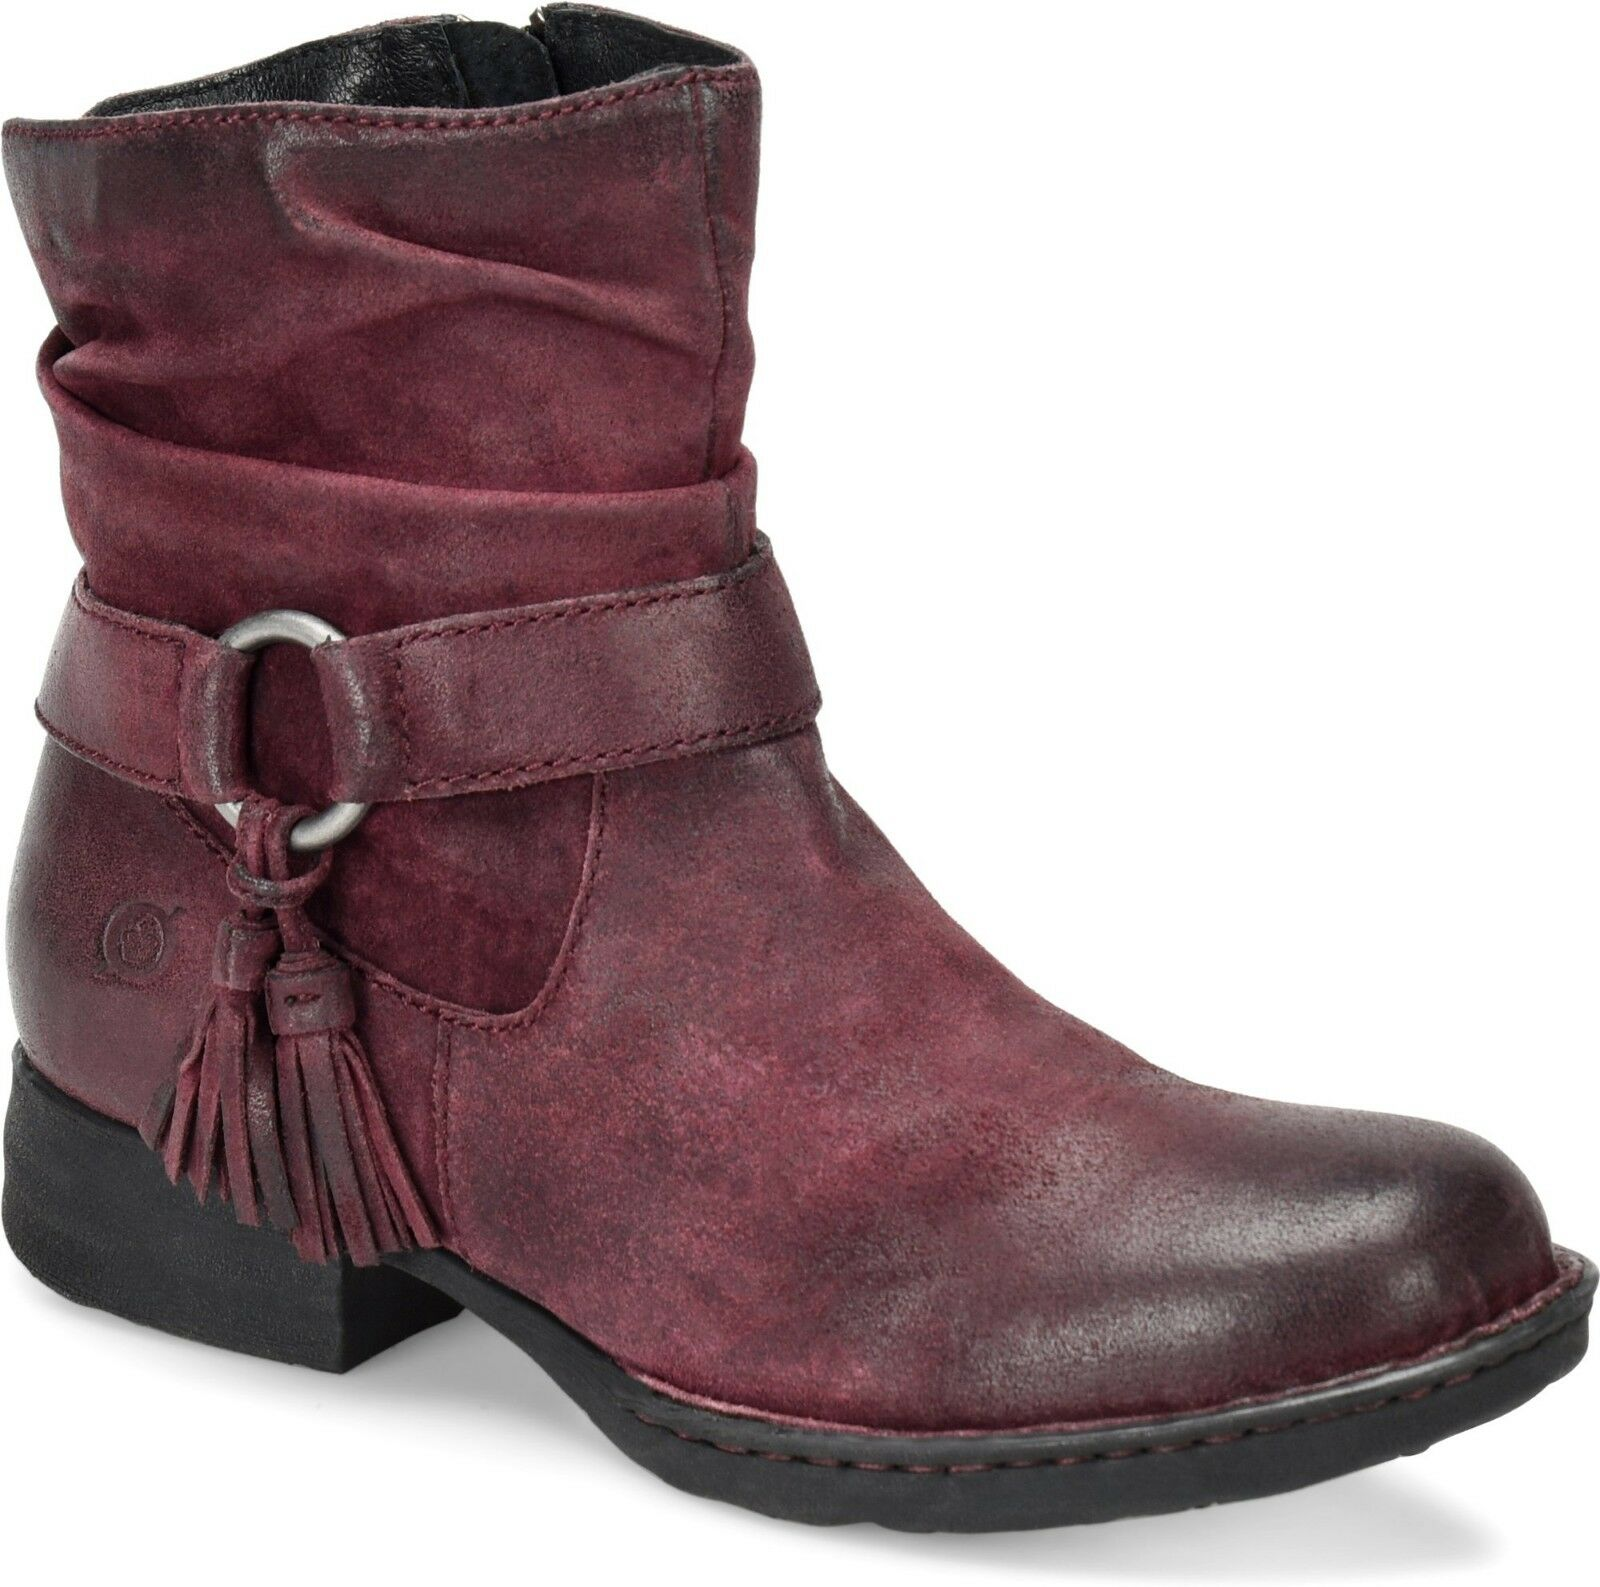 Born Cory Womens Size 7M Harness Tassel Burgundy Distressed Suede Suede Suede Booties New e51ad4